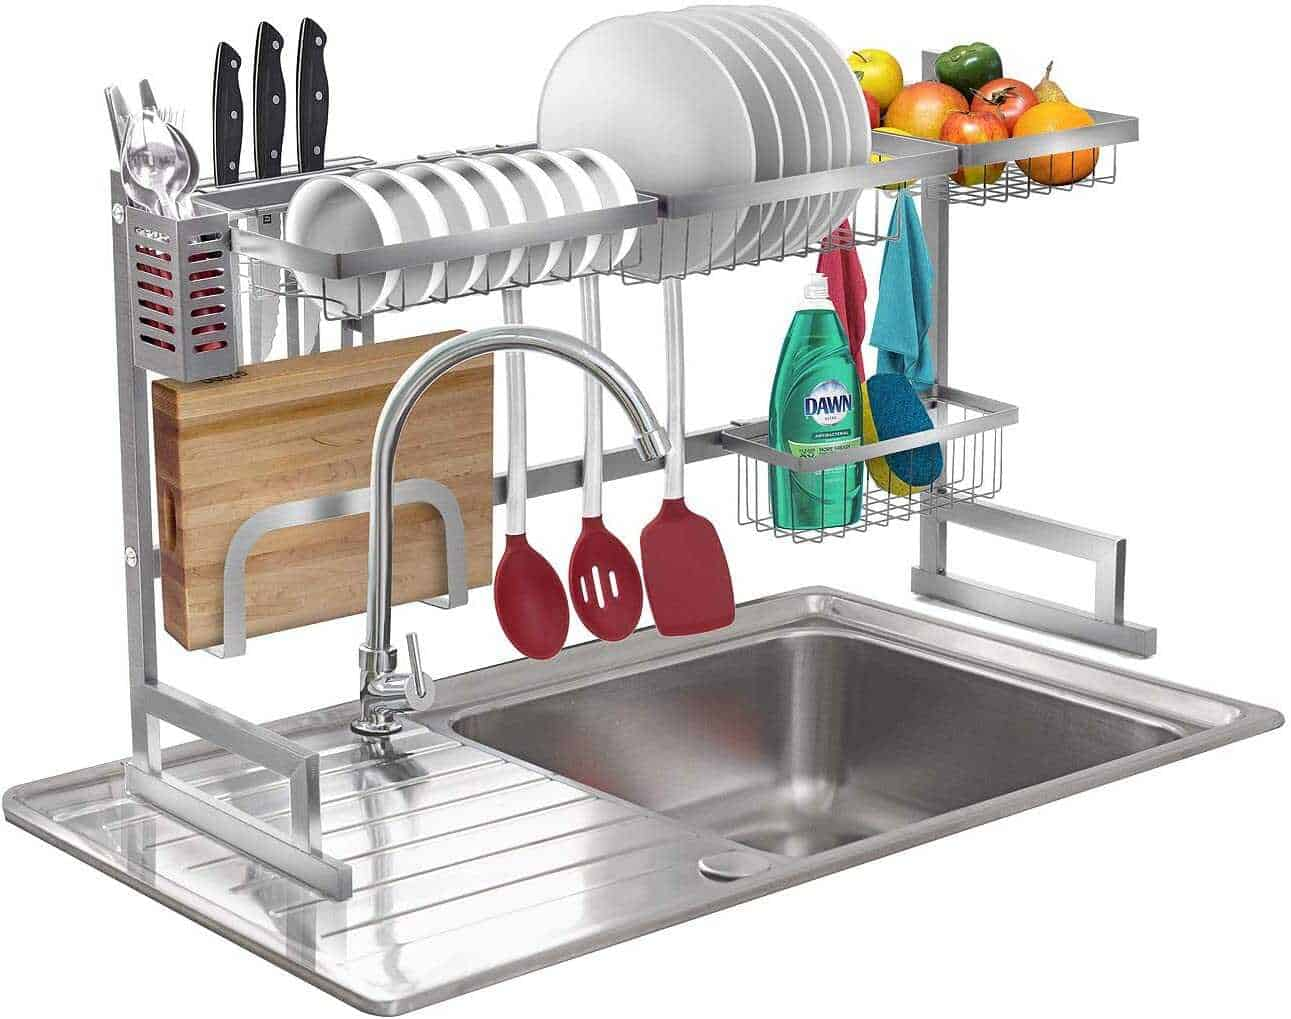 Top 6 Best Over The Sink Dish Rack Reviewed Dish Drying Racks